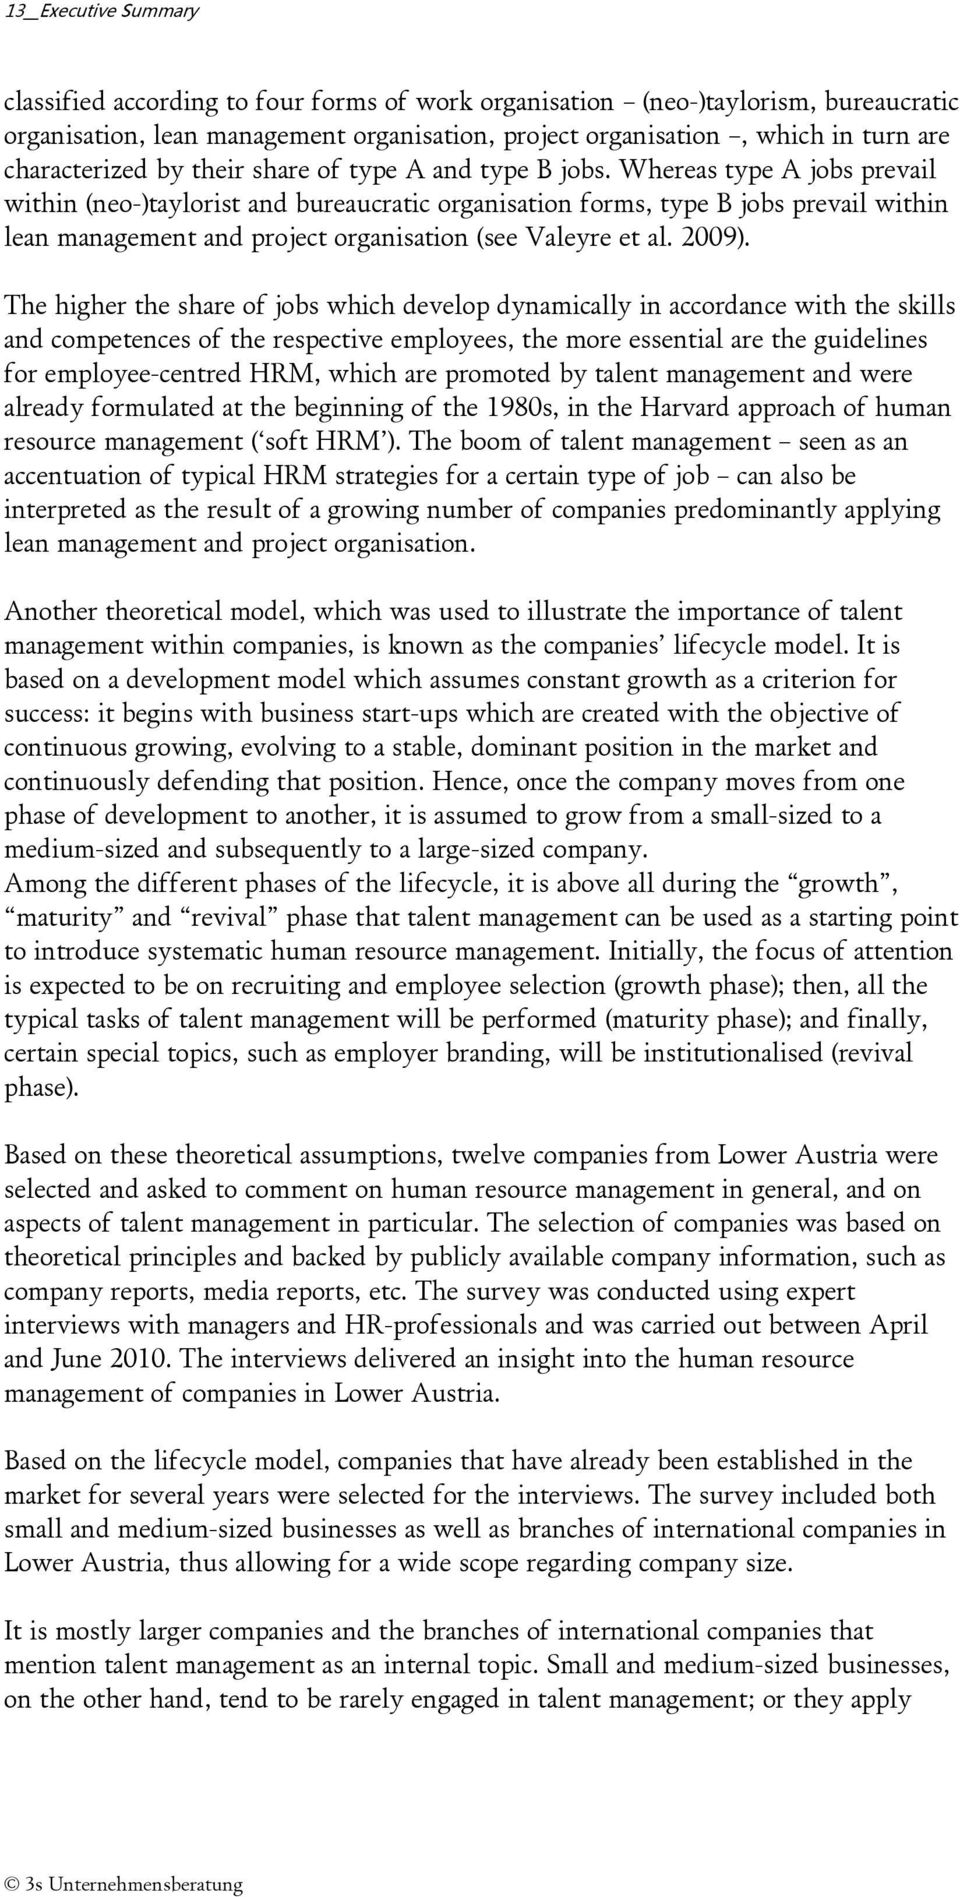 Whereas type A jobs prevail within (neo-)taylorist and bureaucratic organisation forms, type B jobs prevail within lean management and project organisation (see Valeyre et al. 2009).